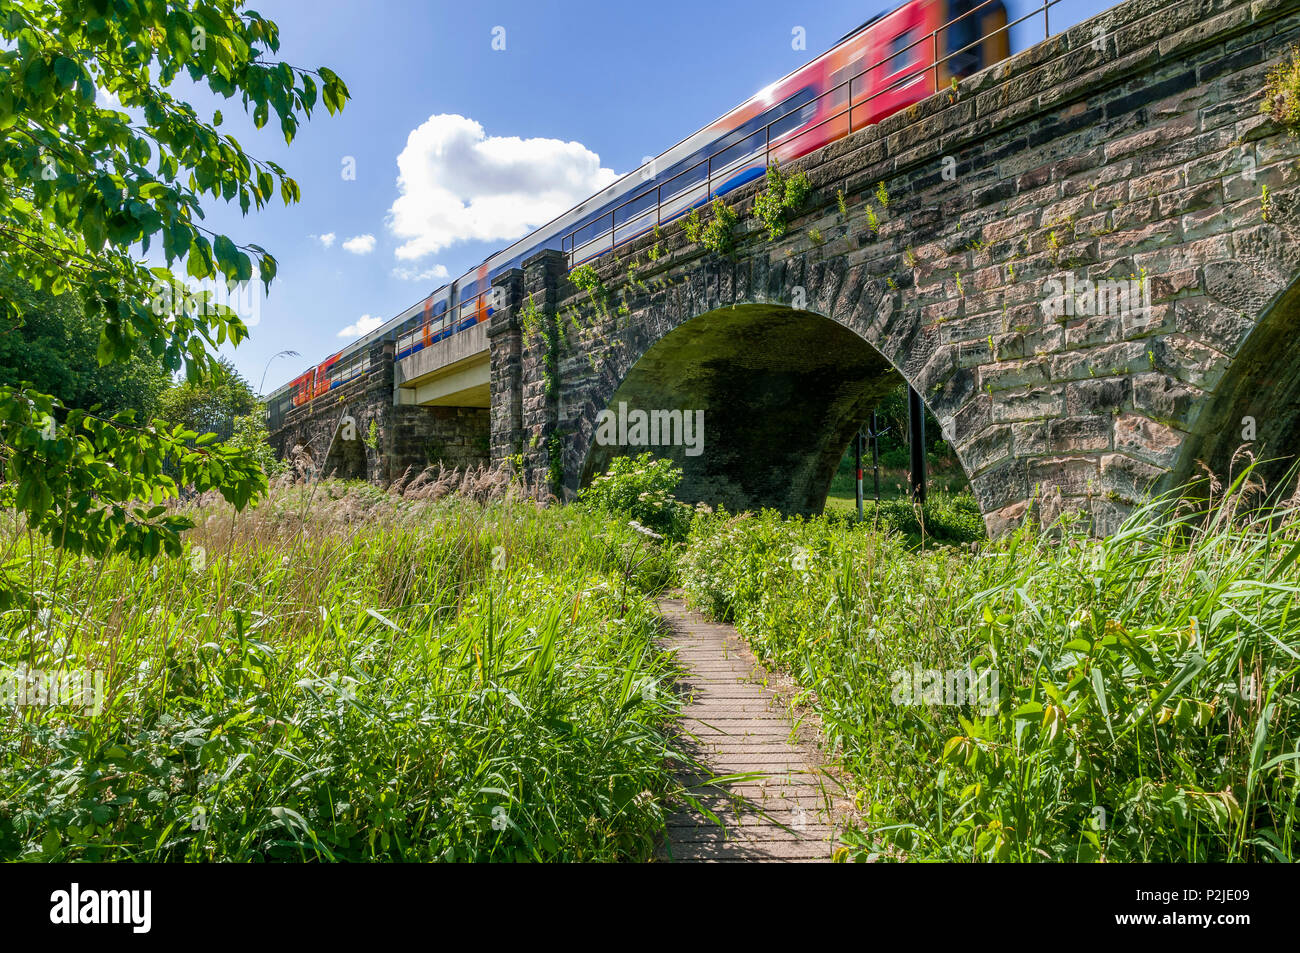 Viaduct over the Sankey canal with train passing over it. Sankey Valley Linear Park. Stock Photo